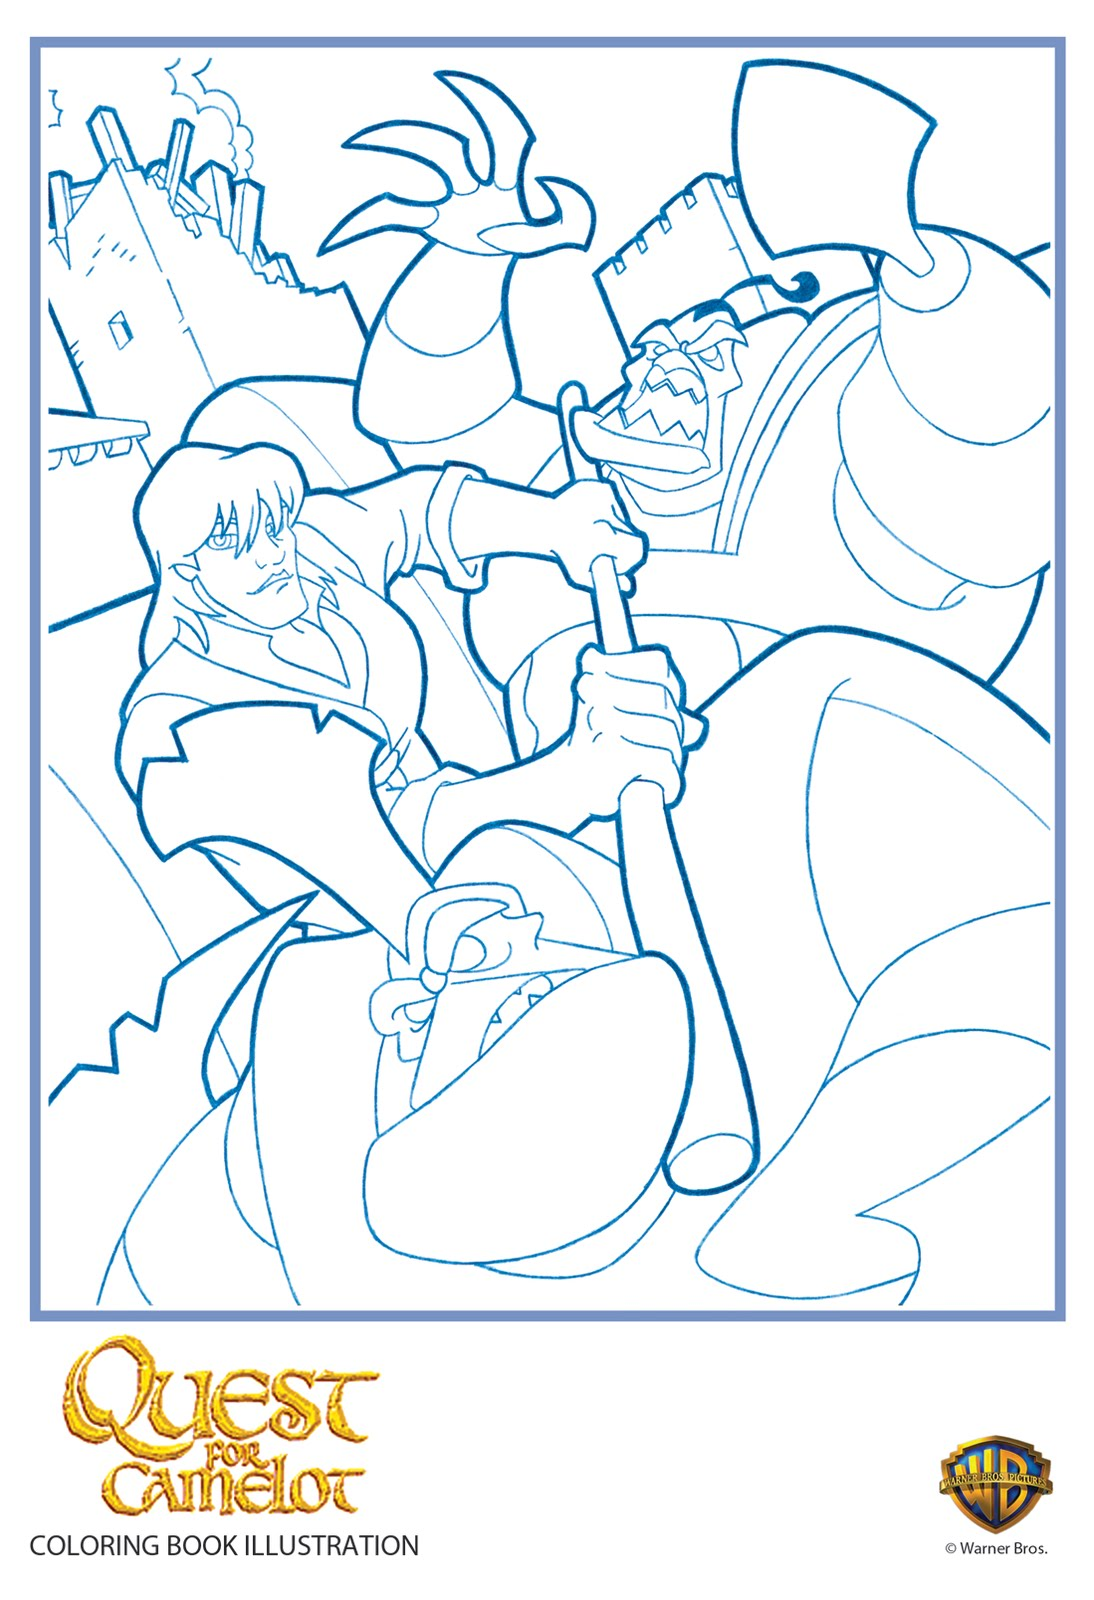 Steintime quest for camelot coloring page for Quest for camelot coloring pages